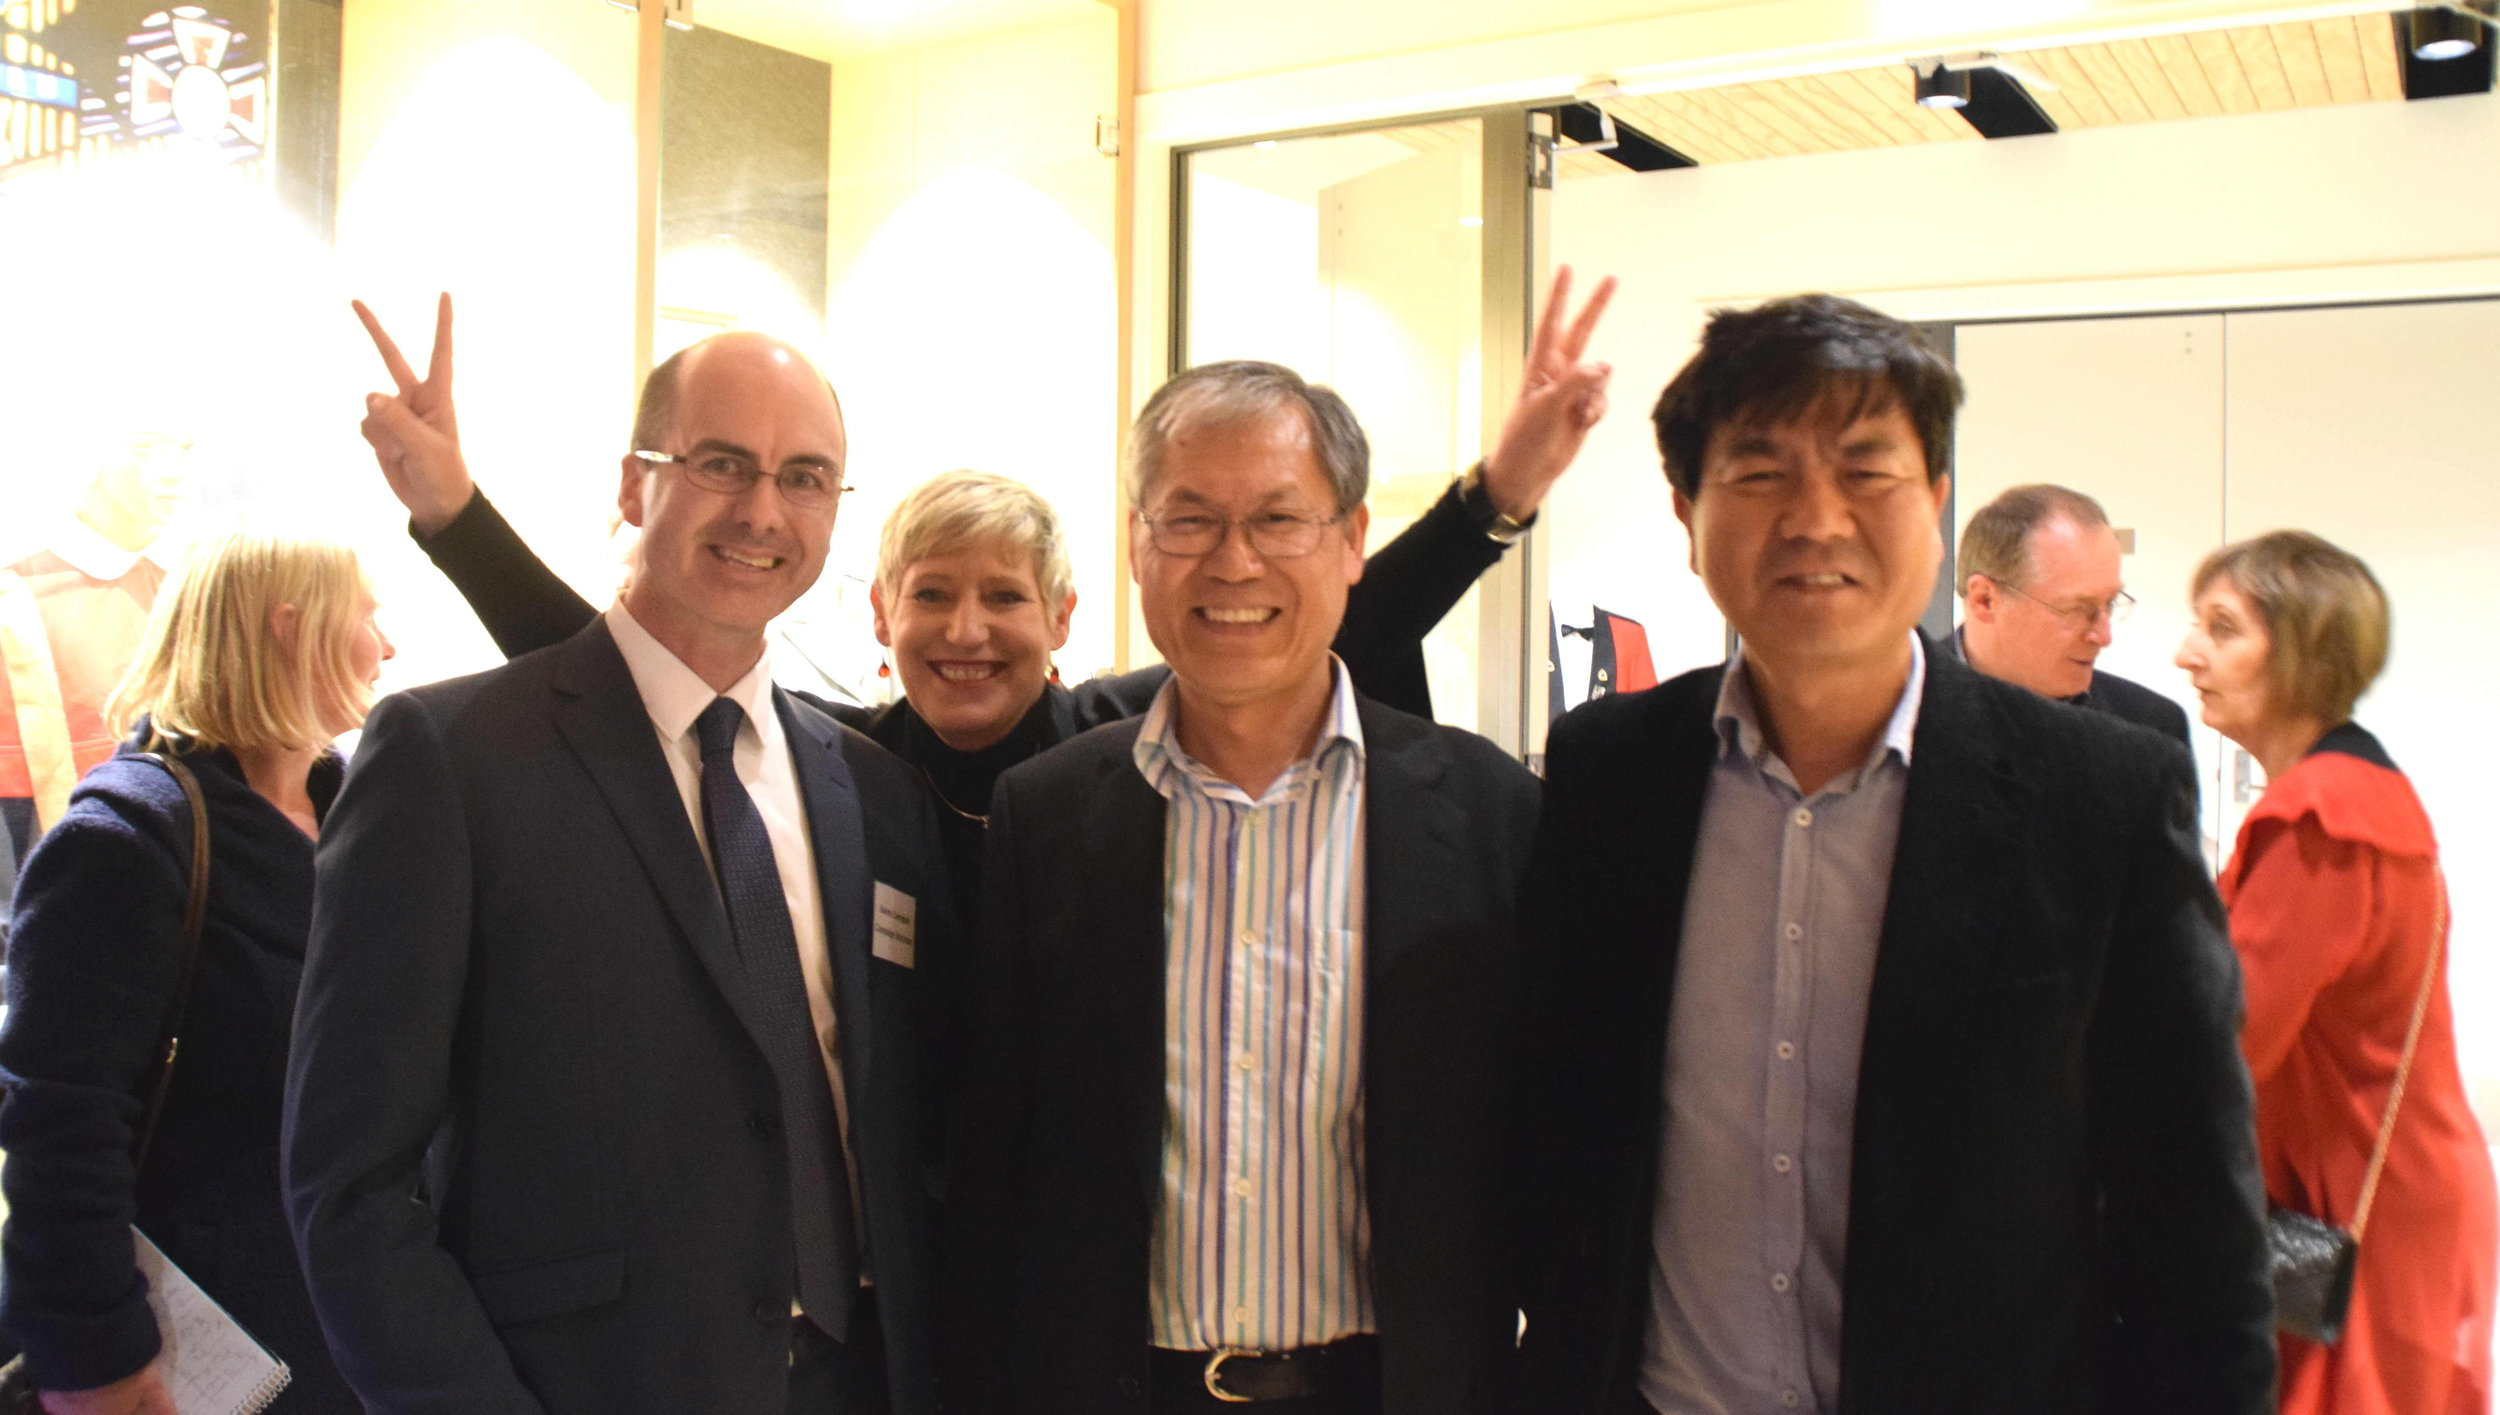 Mayor Lianne Dalziel (flashing the victory sign), with her campaign manager Aaron Cambpell (left), Councillor Jimmy Chen (middle), and Kevin Park of Canterbury Migrants Centre